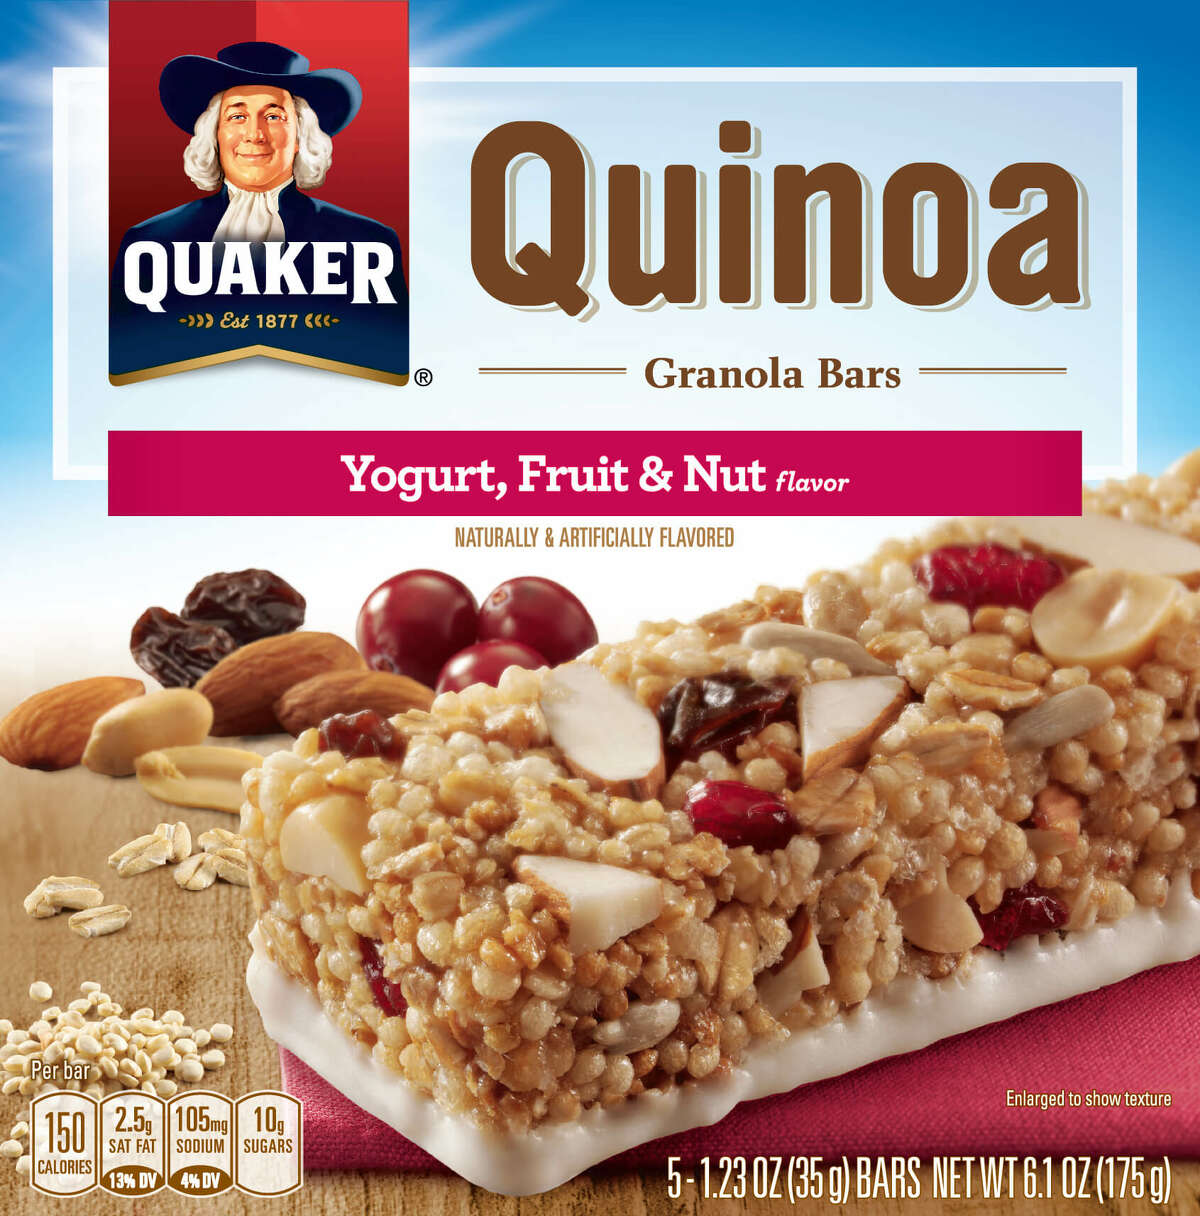 The Quaker Oats Company, a subsidiary of PepsiCo, Inc., has announced a voluntary recall of a small quantity of Quaker Quinoa Granola Bars after an ingredient supplier was found to have distributed sunflower kernels that may be contaminated with Listeria monocytogenes: 6.1 ounce boxes of Quaker Quinoa Granola Bars Chocolate Nut Medley with UPC code 30000 32241 and Best Before Dates of: 10/16/2016, 10/17/2016; 6.1 ounce boxes of Quaker Quinoa Granola Bars Yogurt, Fruit & Nut with UPC 30000 32243 and Best Before Dates of: 10/10/2016, 10/11/2016. Read more.